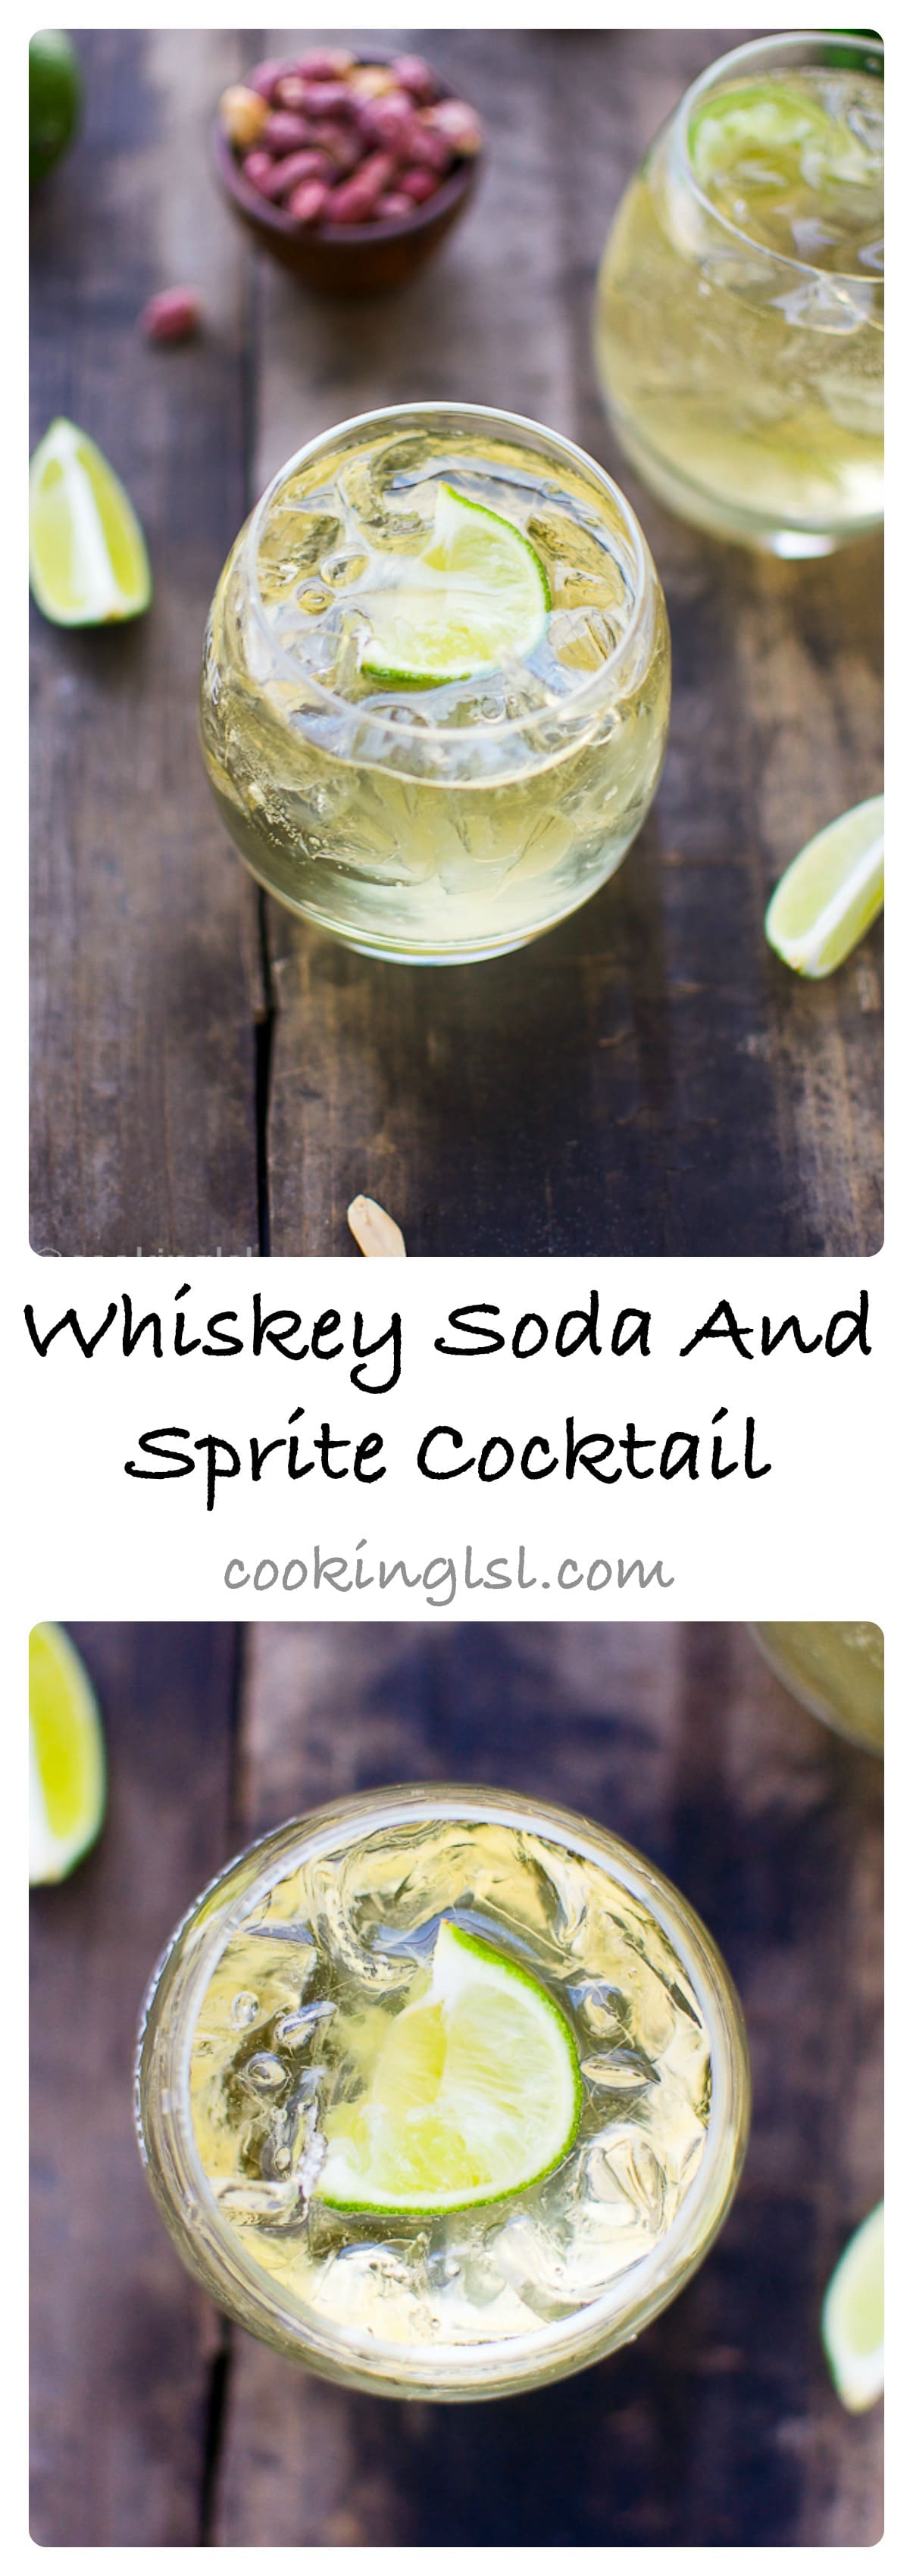 whisky-lime-sprite-cocktail